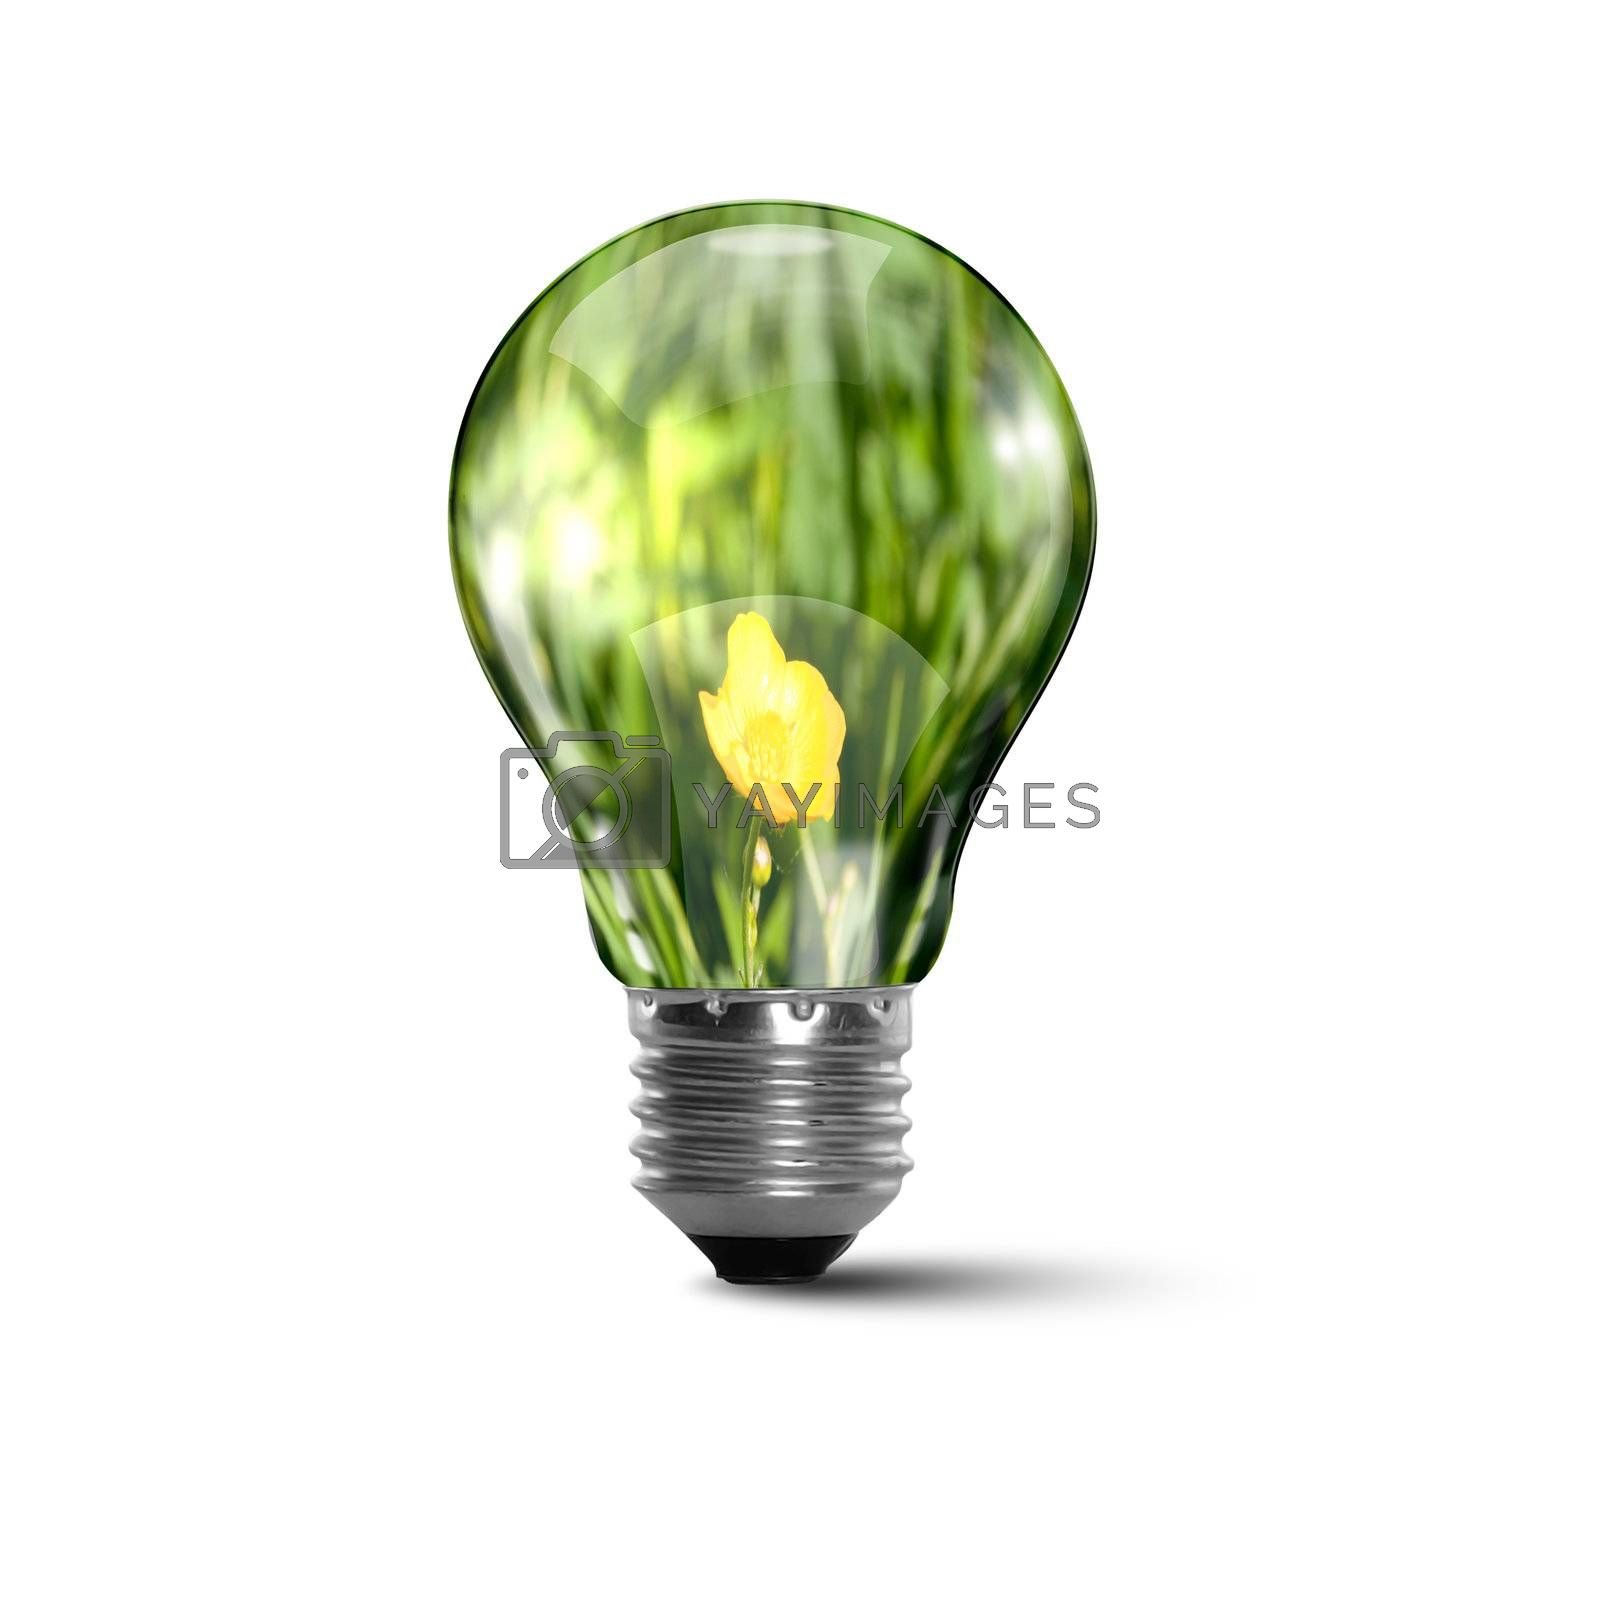 Ecology bulb light by Sergey Nivens